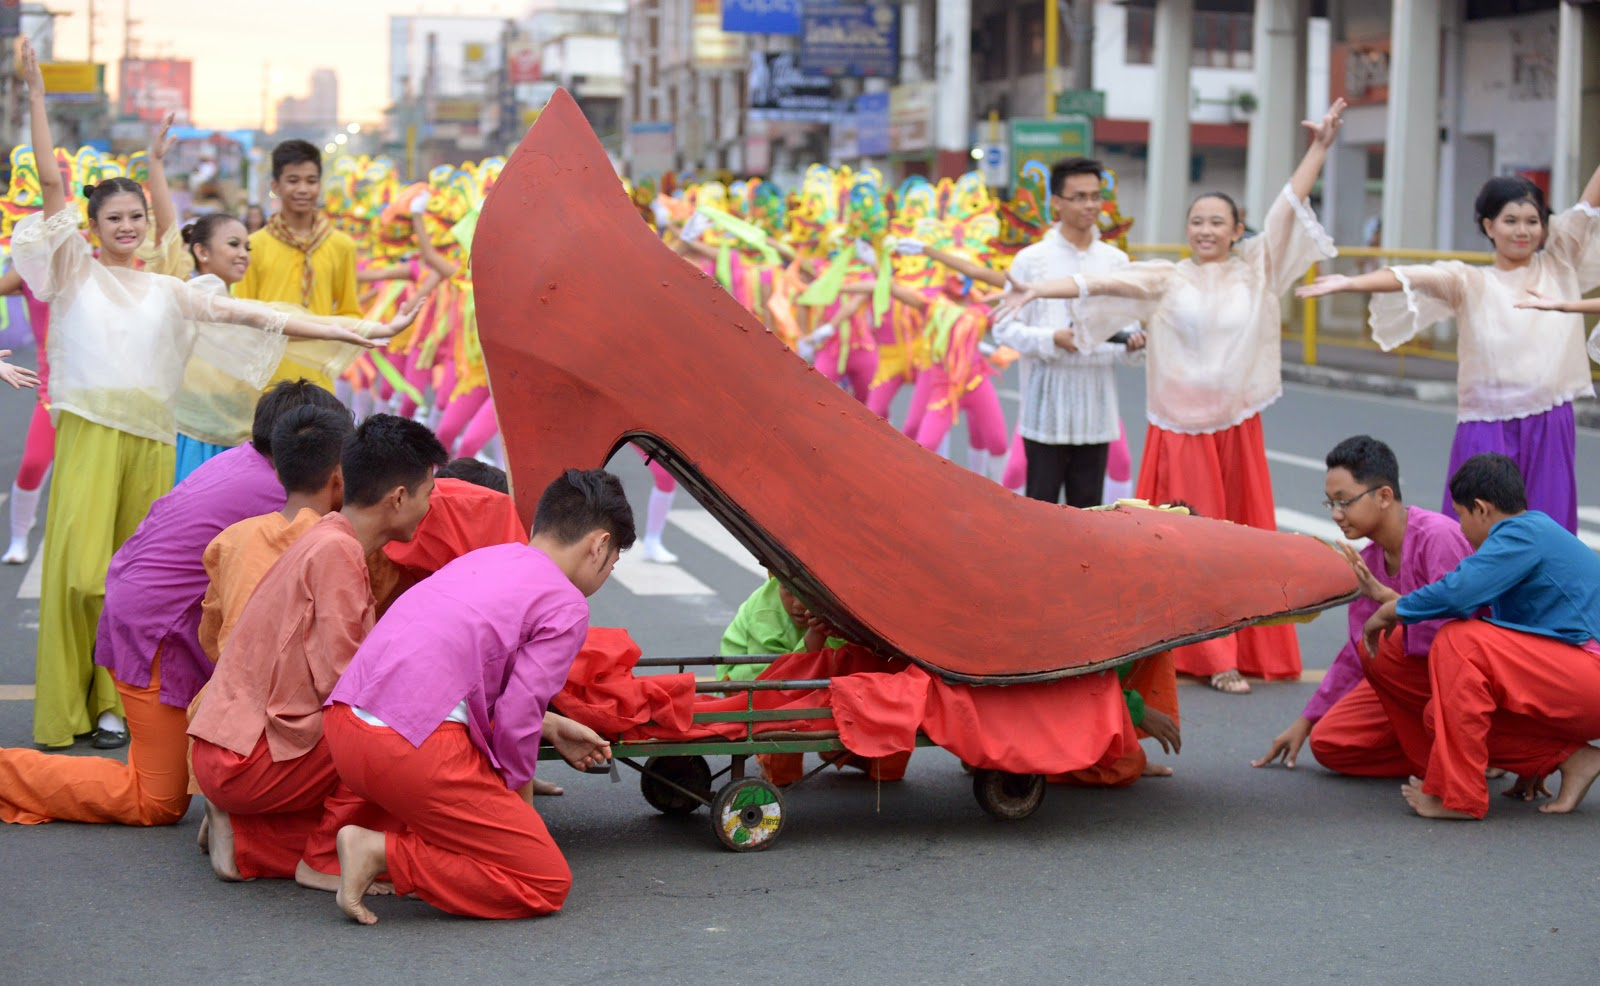 Marikina Events - Sapatos  (shoe) Festival 2014